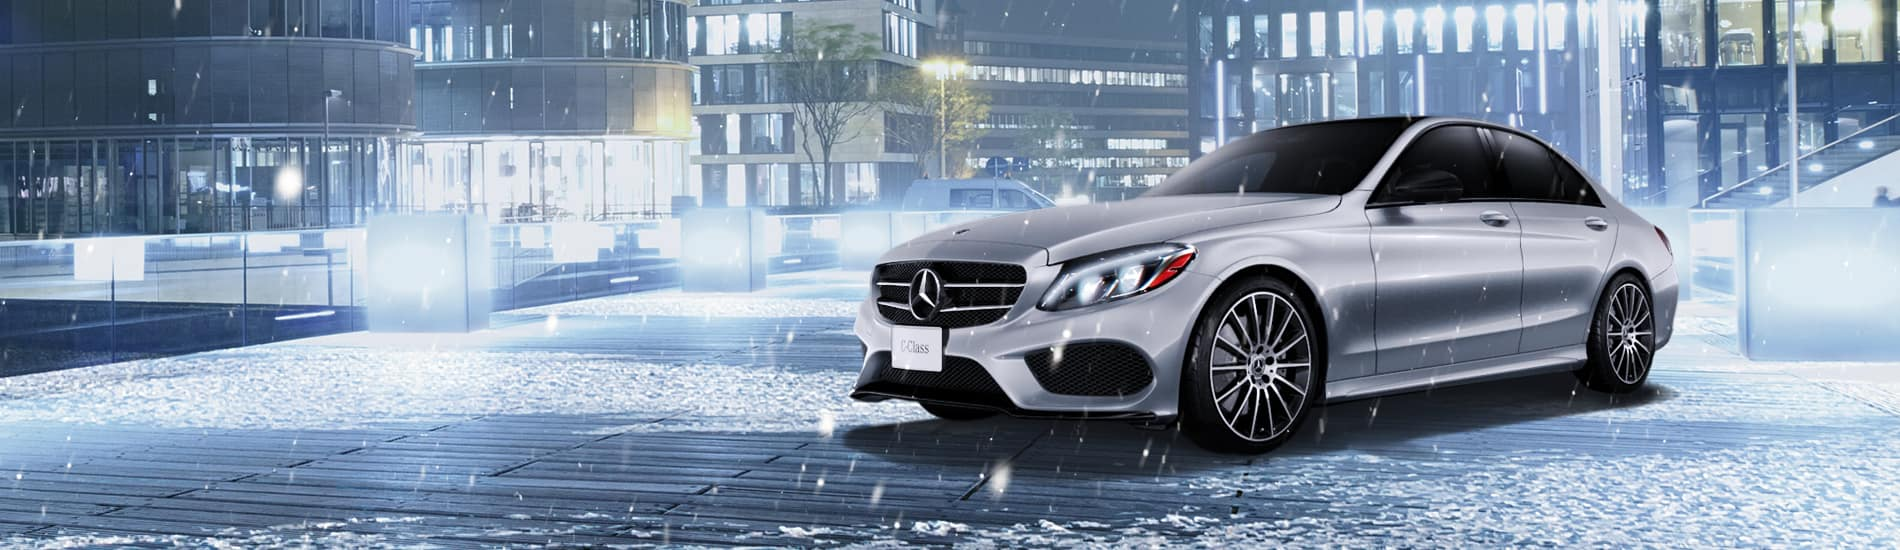 Current offers demos mercedes benz downtown toronto for Mercedes benz sales jobs